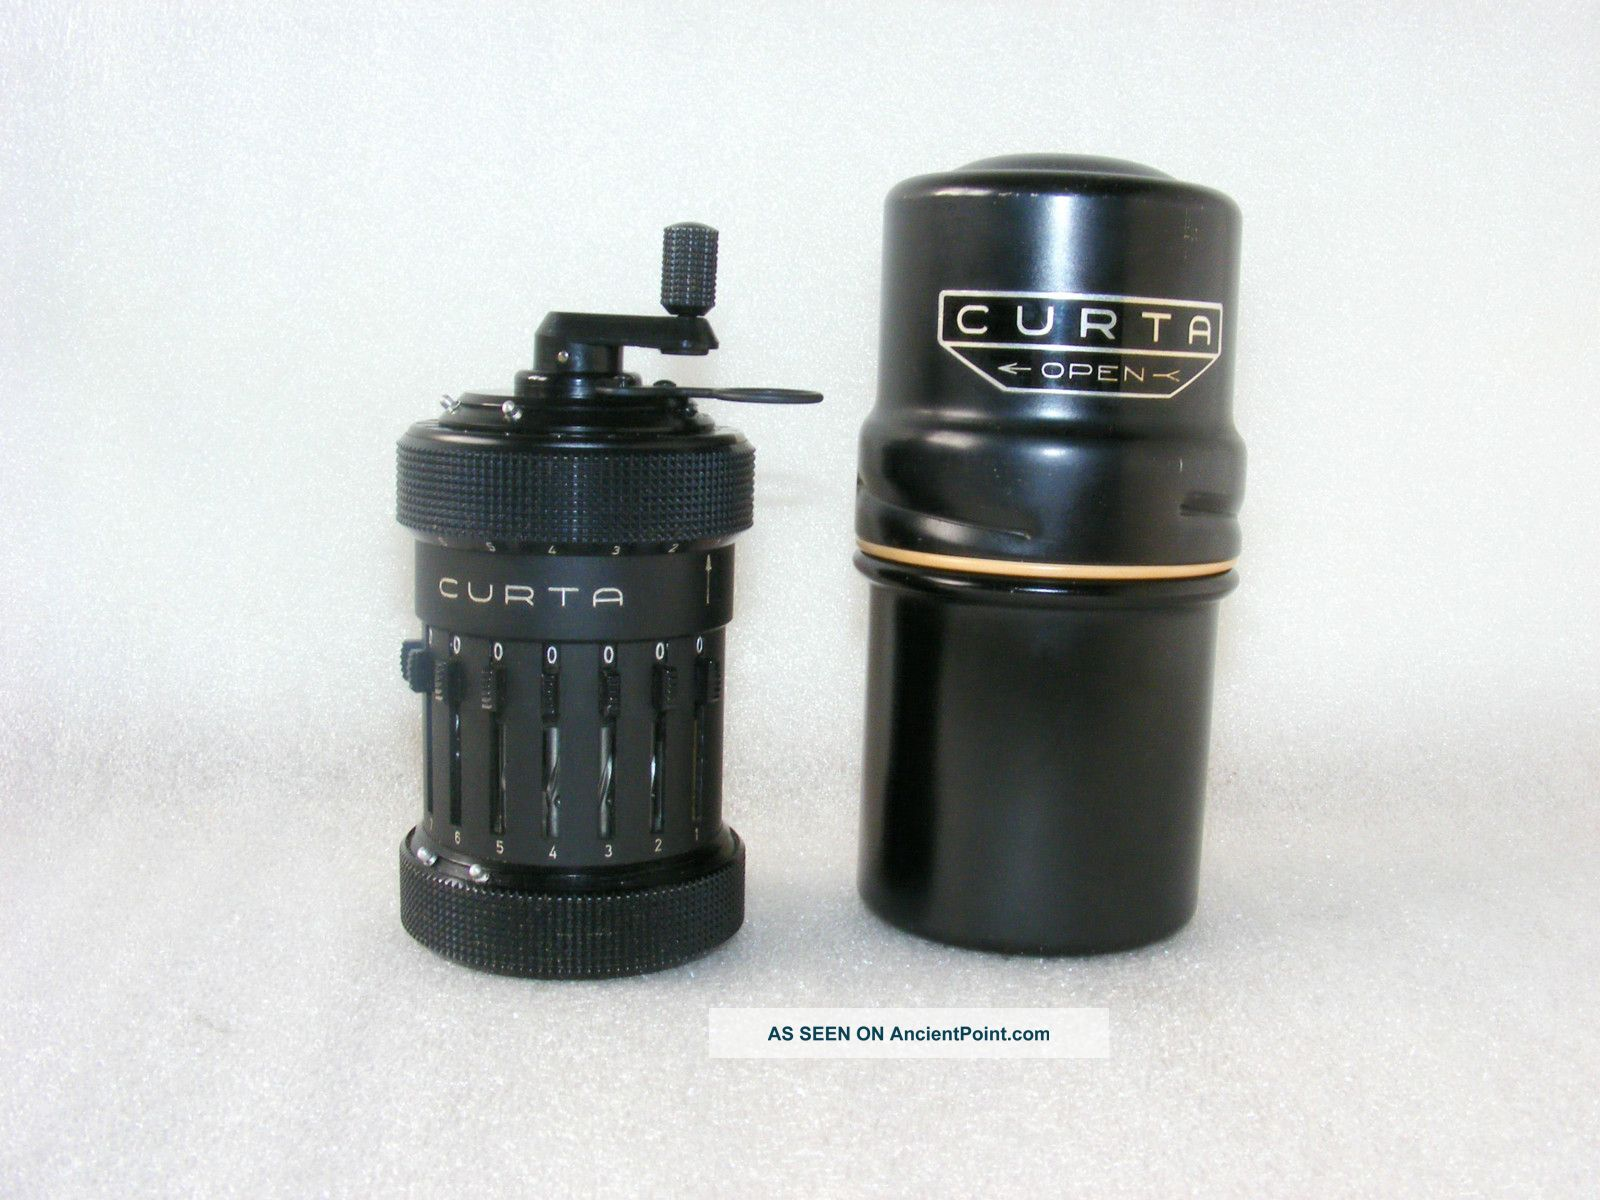 Curta Calculator Type I Other photo